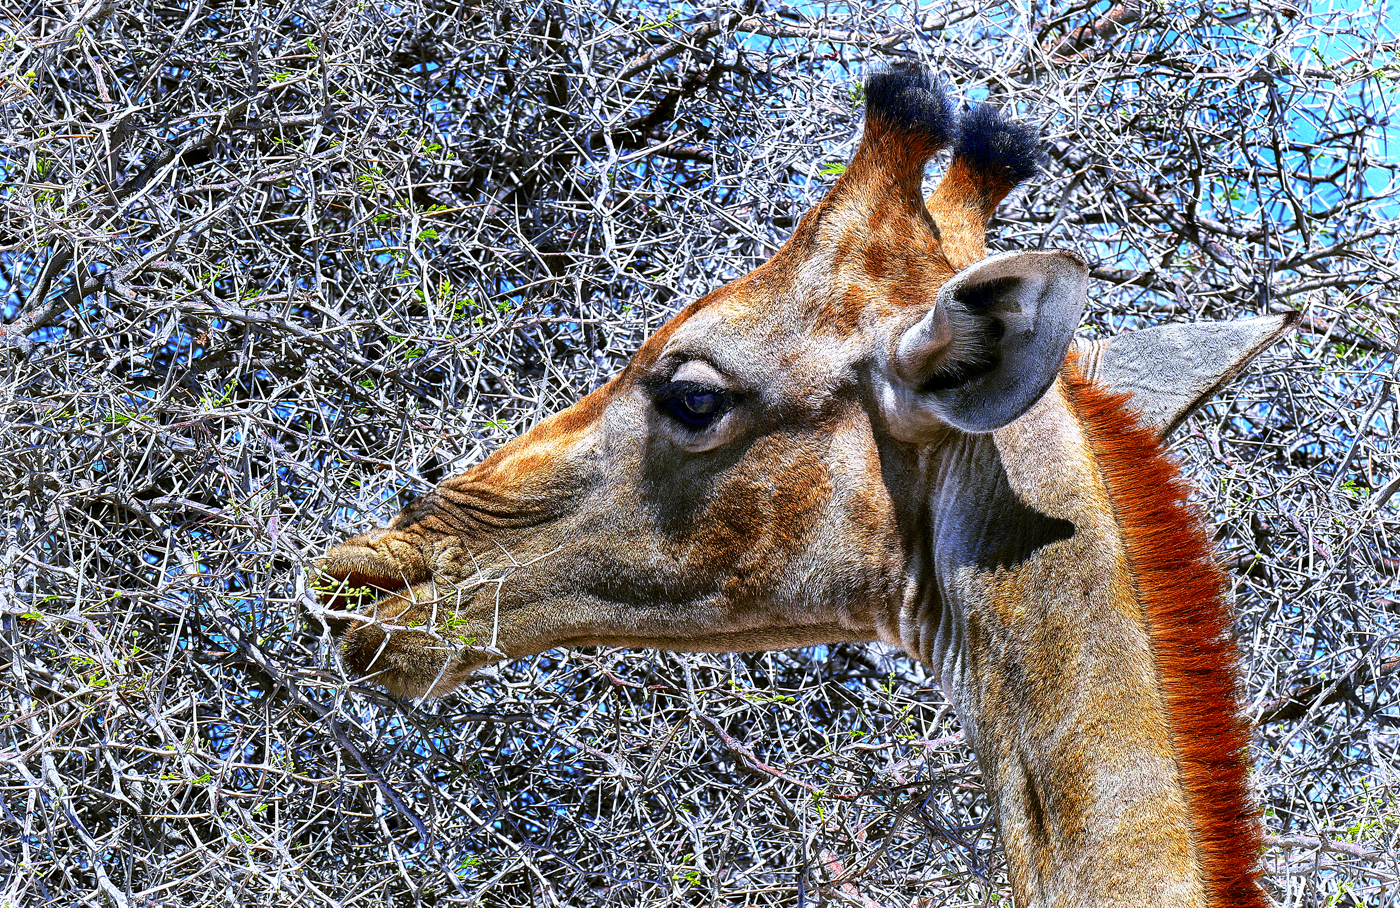 Giraffe eating camelthorn